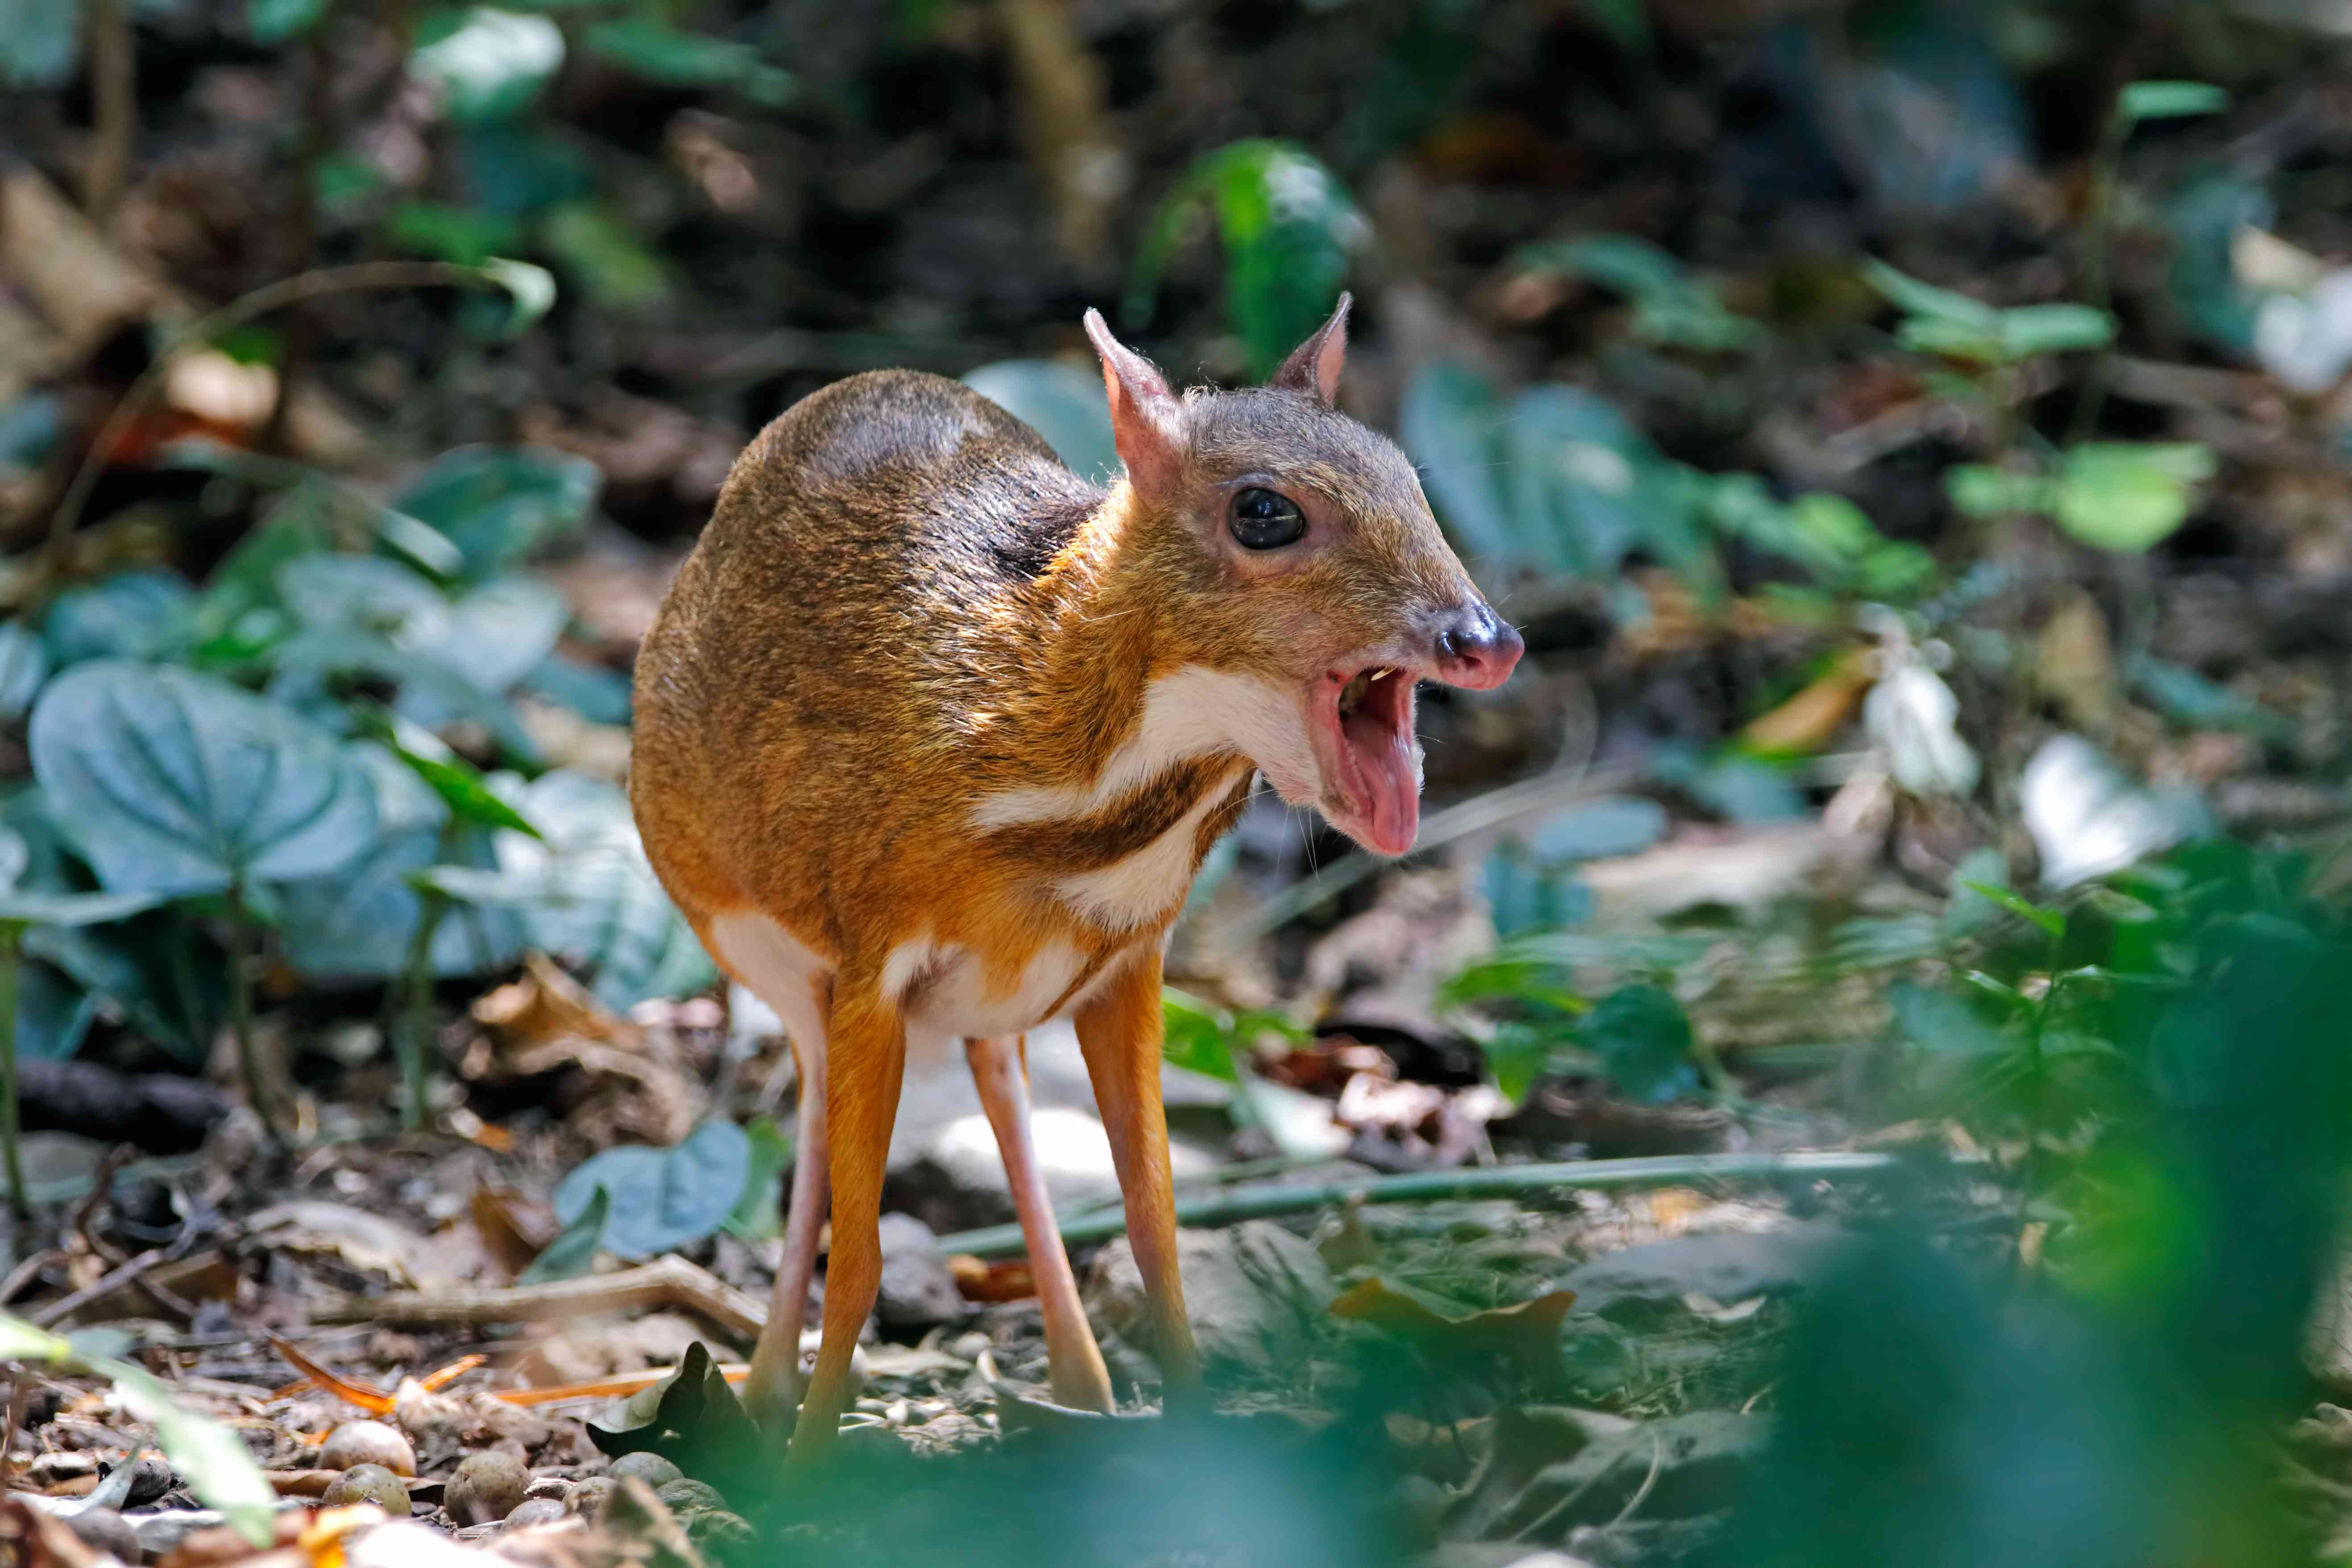 Lesser mouse-deer Tragulus kanchil in the forest